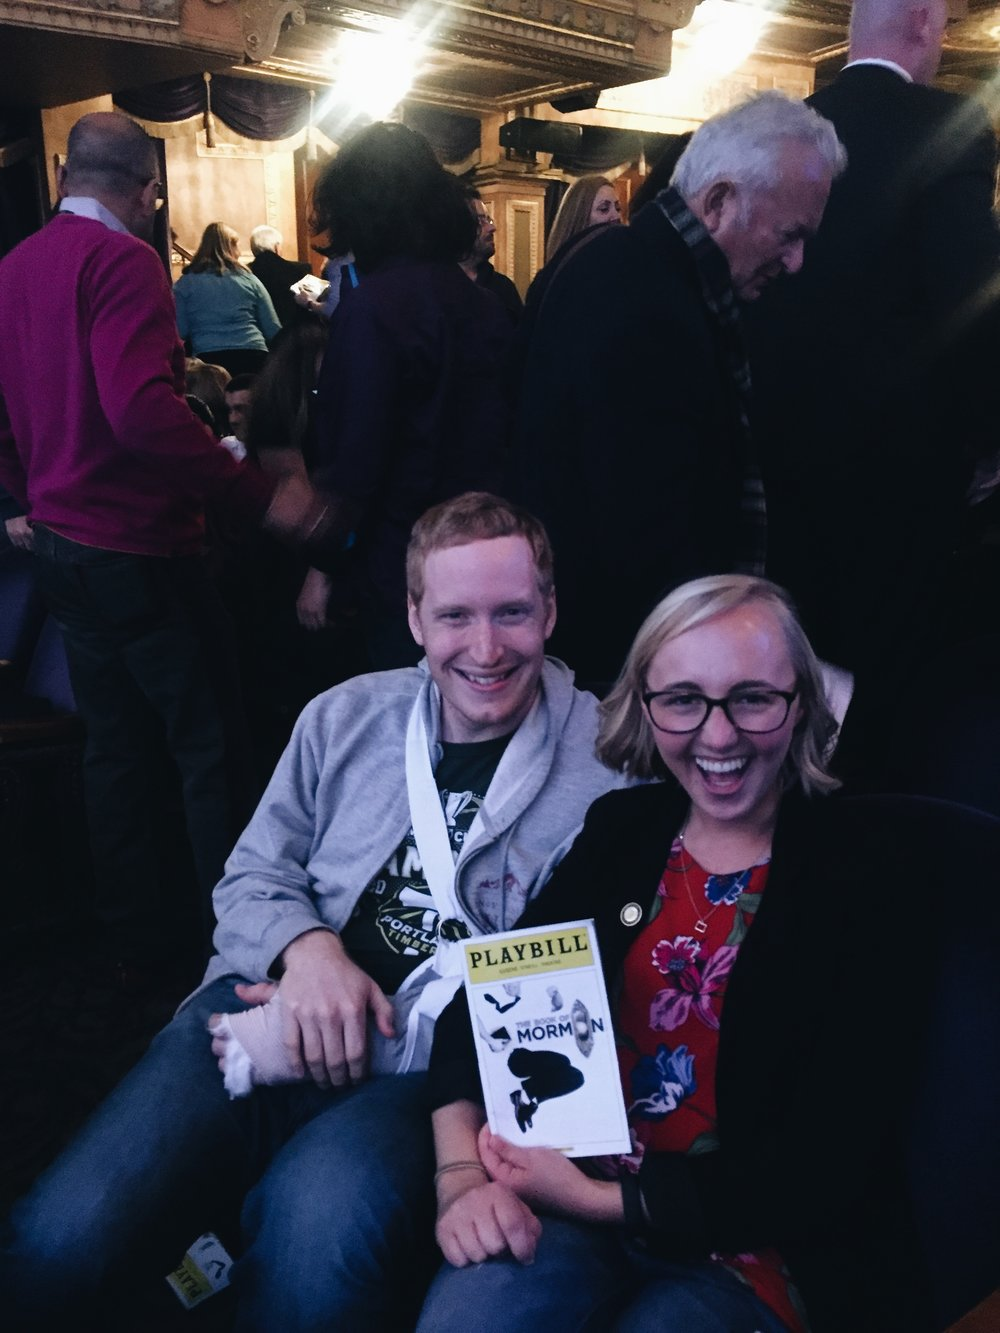 I entered the lottery for Book of Mormon tickets... and was the first name drawn. I took my friend Chris, who I was staying with, and we laughed till we cried.